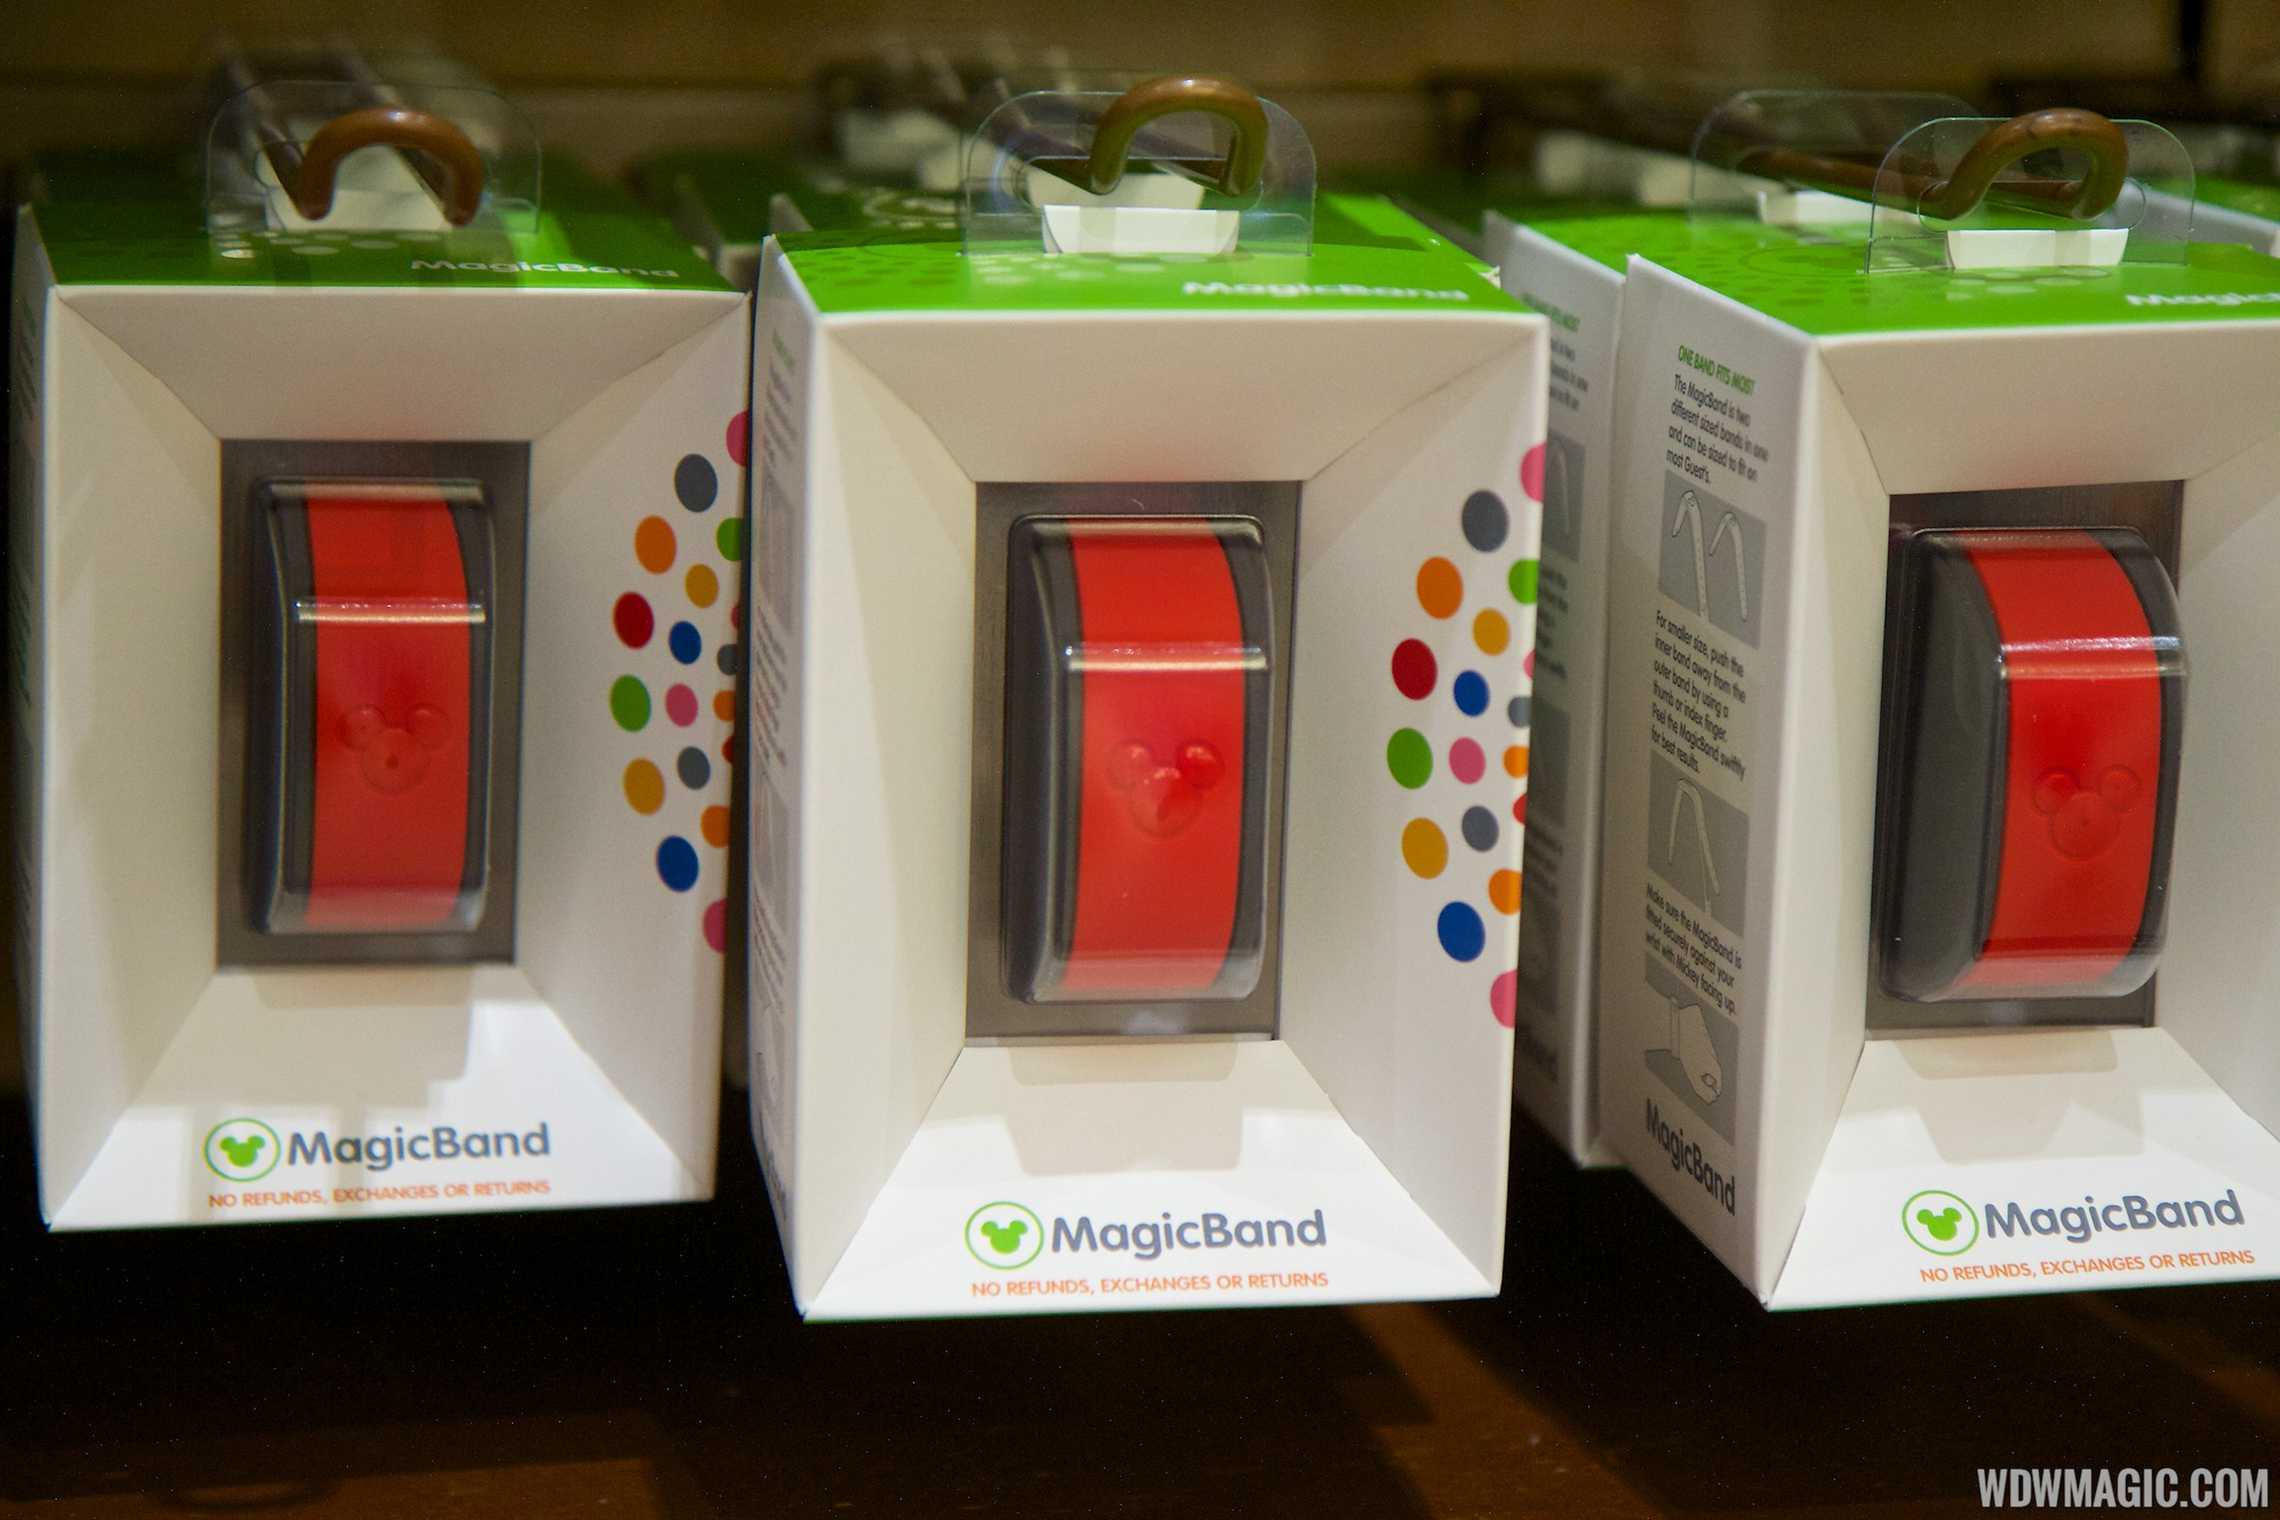 MagicBand retail box